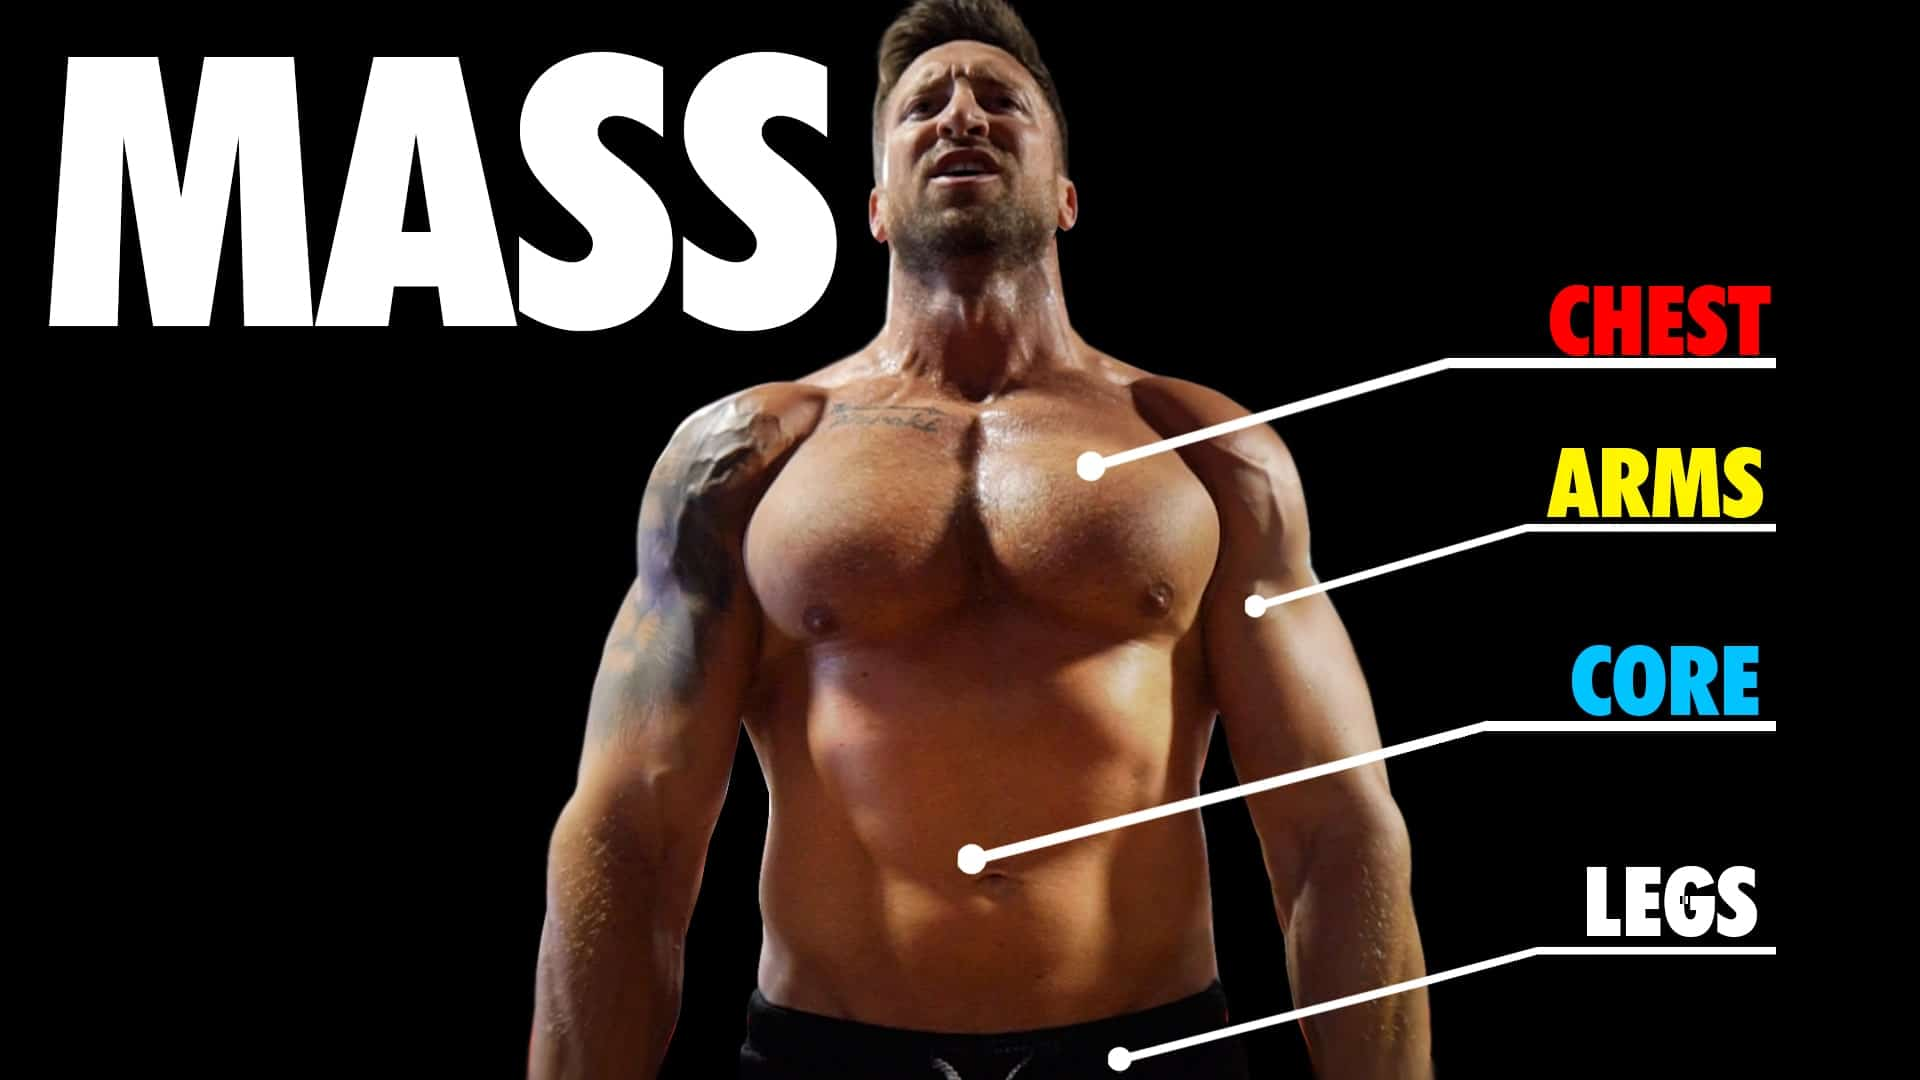 Troy mass building routine workout